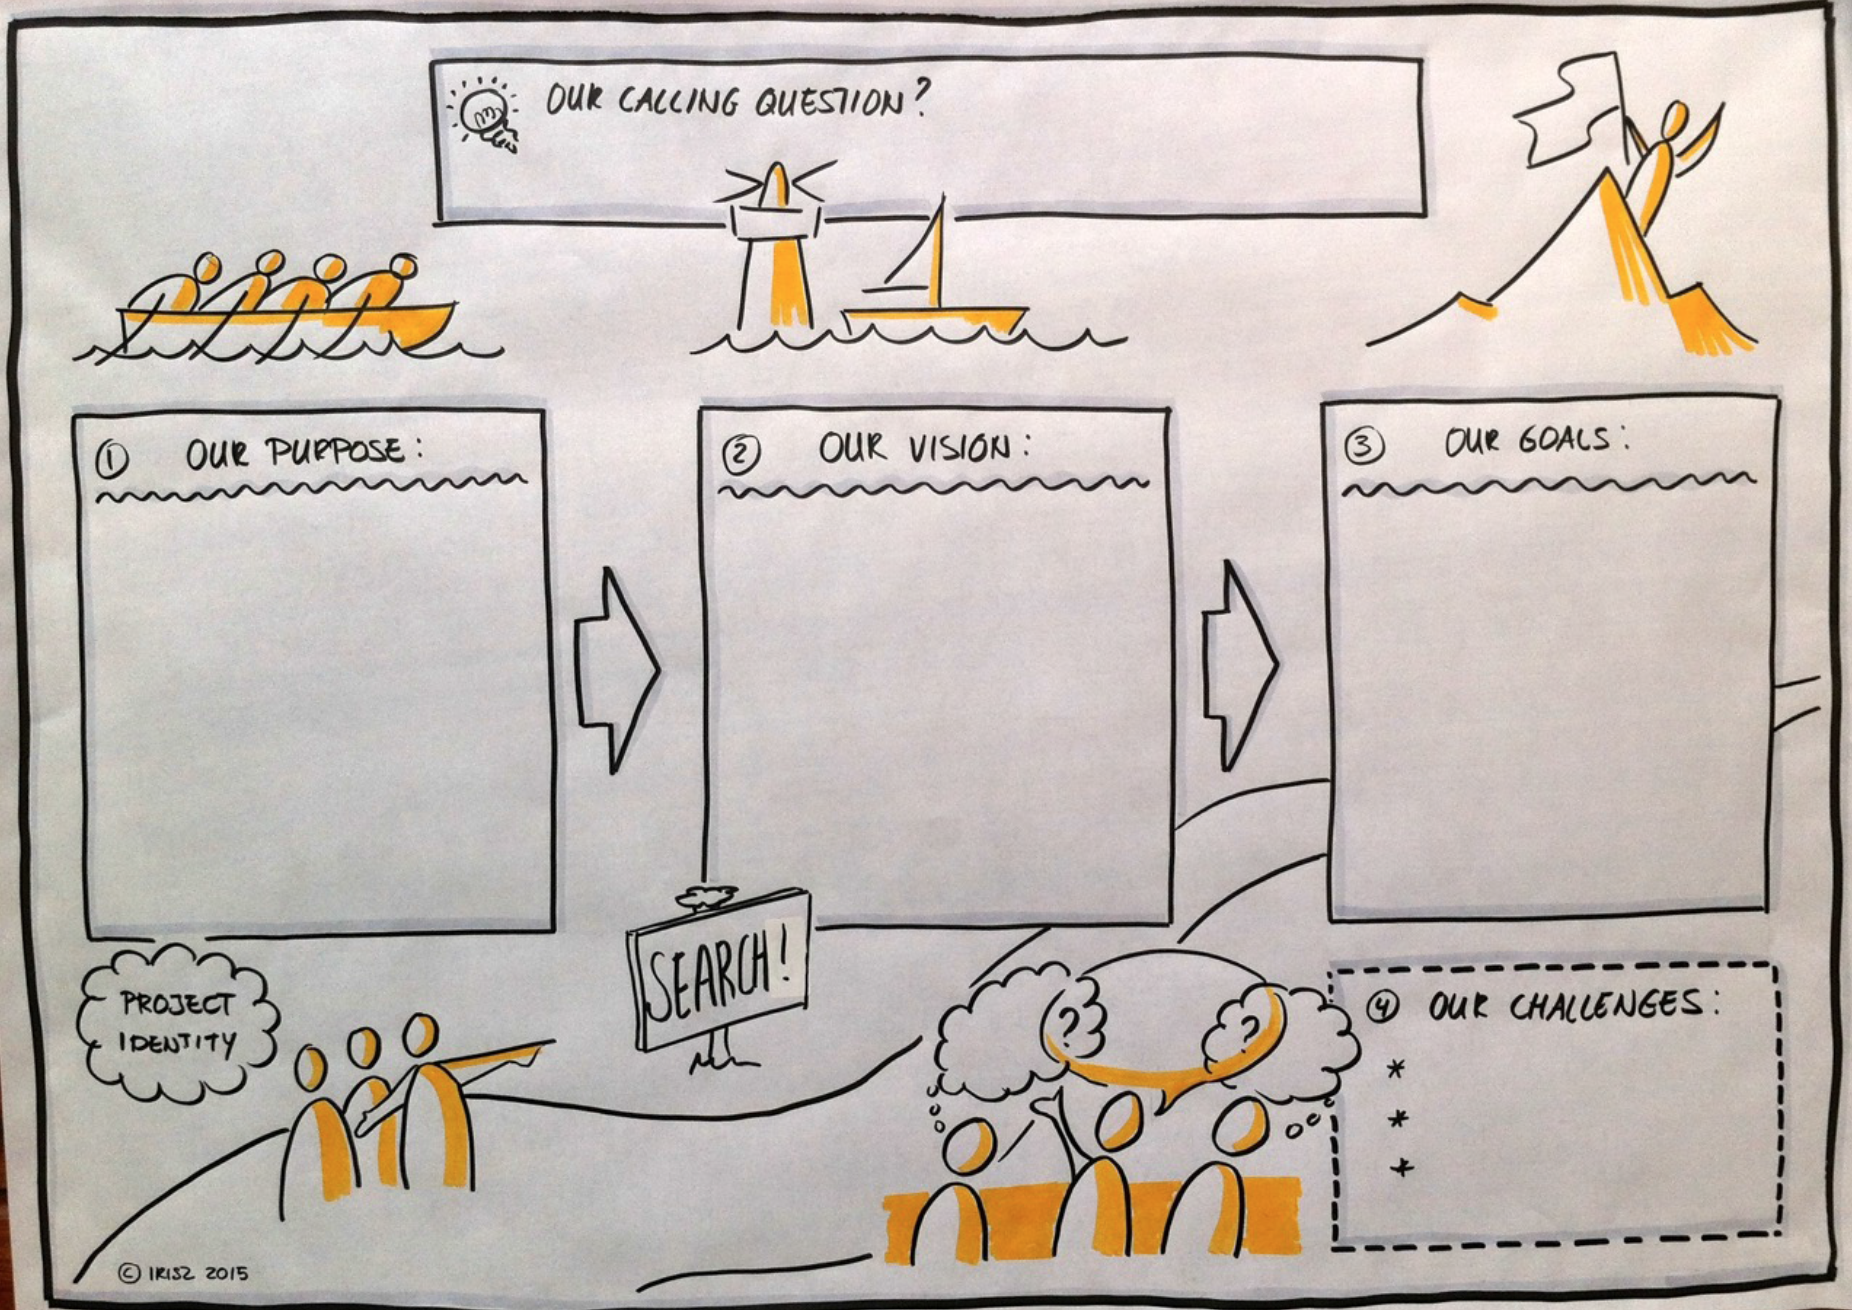 Subgroup-kickoff-template | Templates for graphic facilitation ...